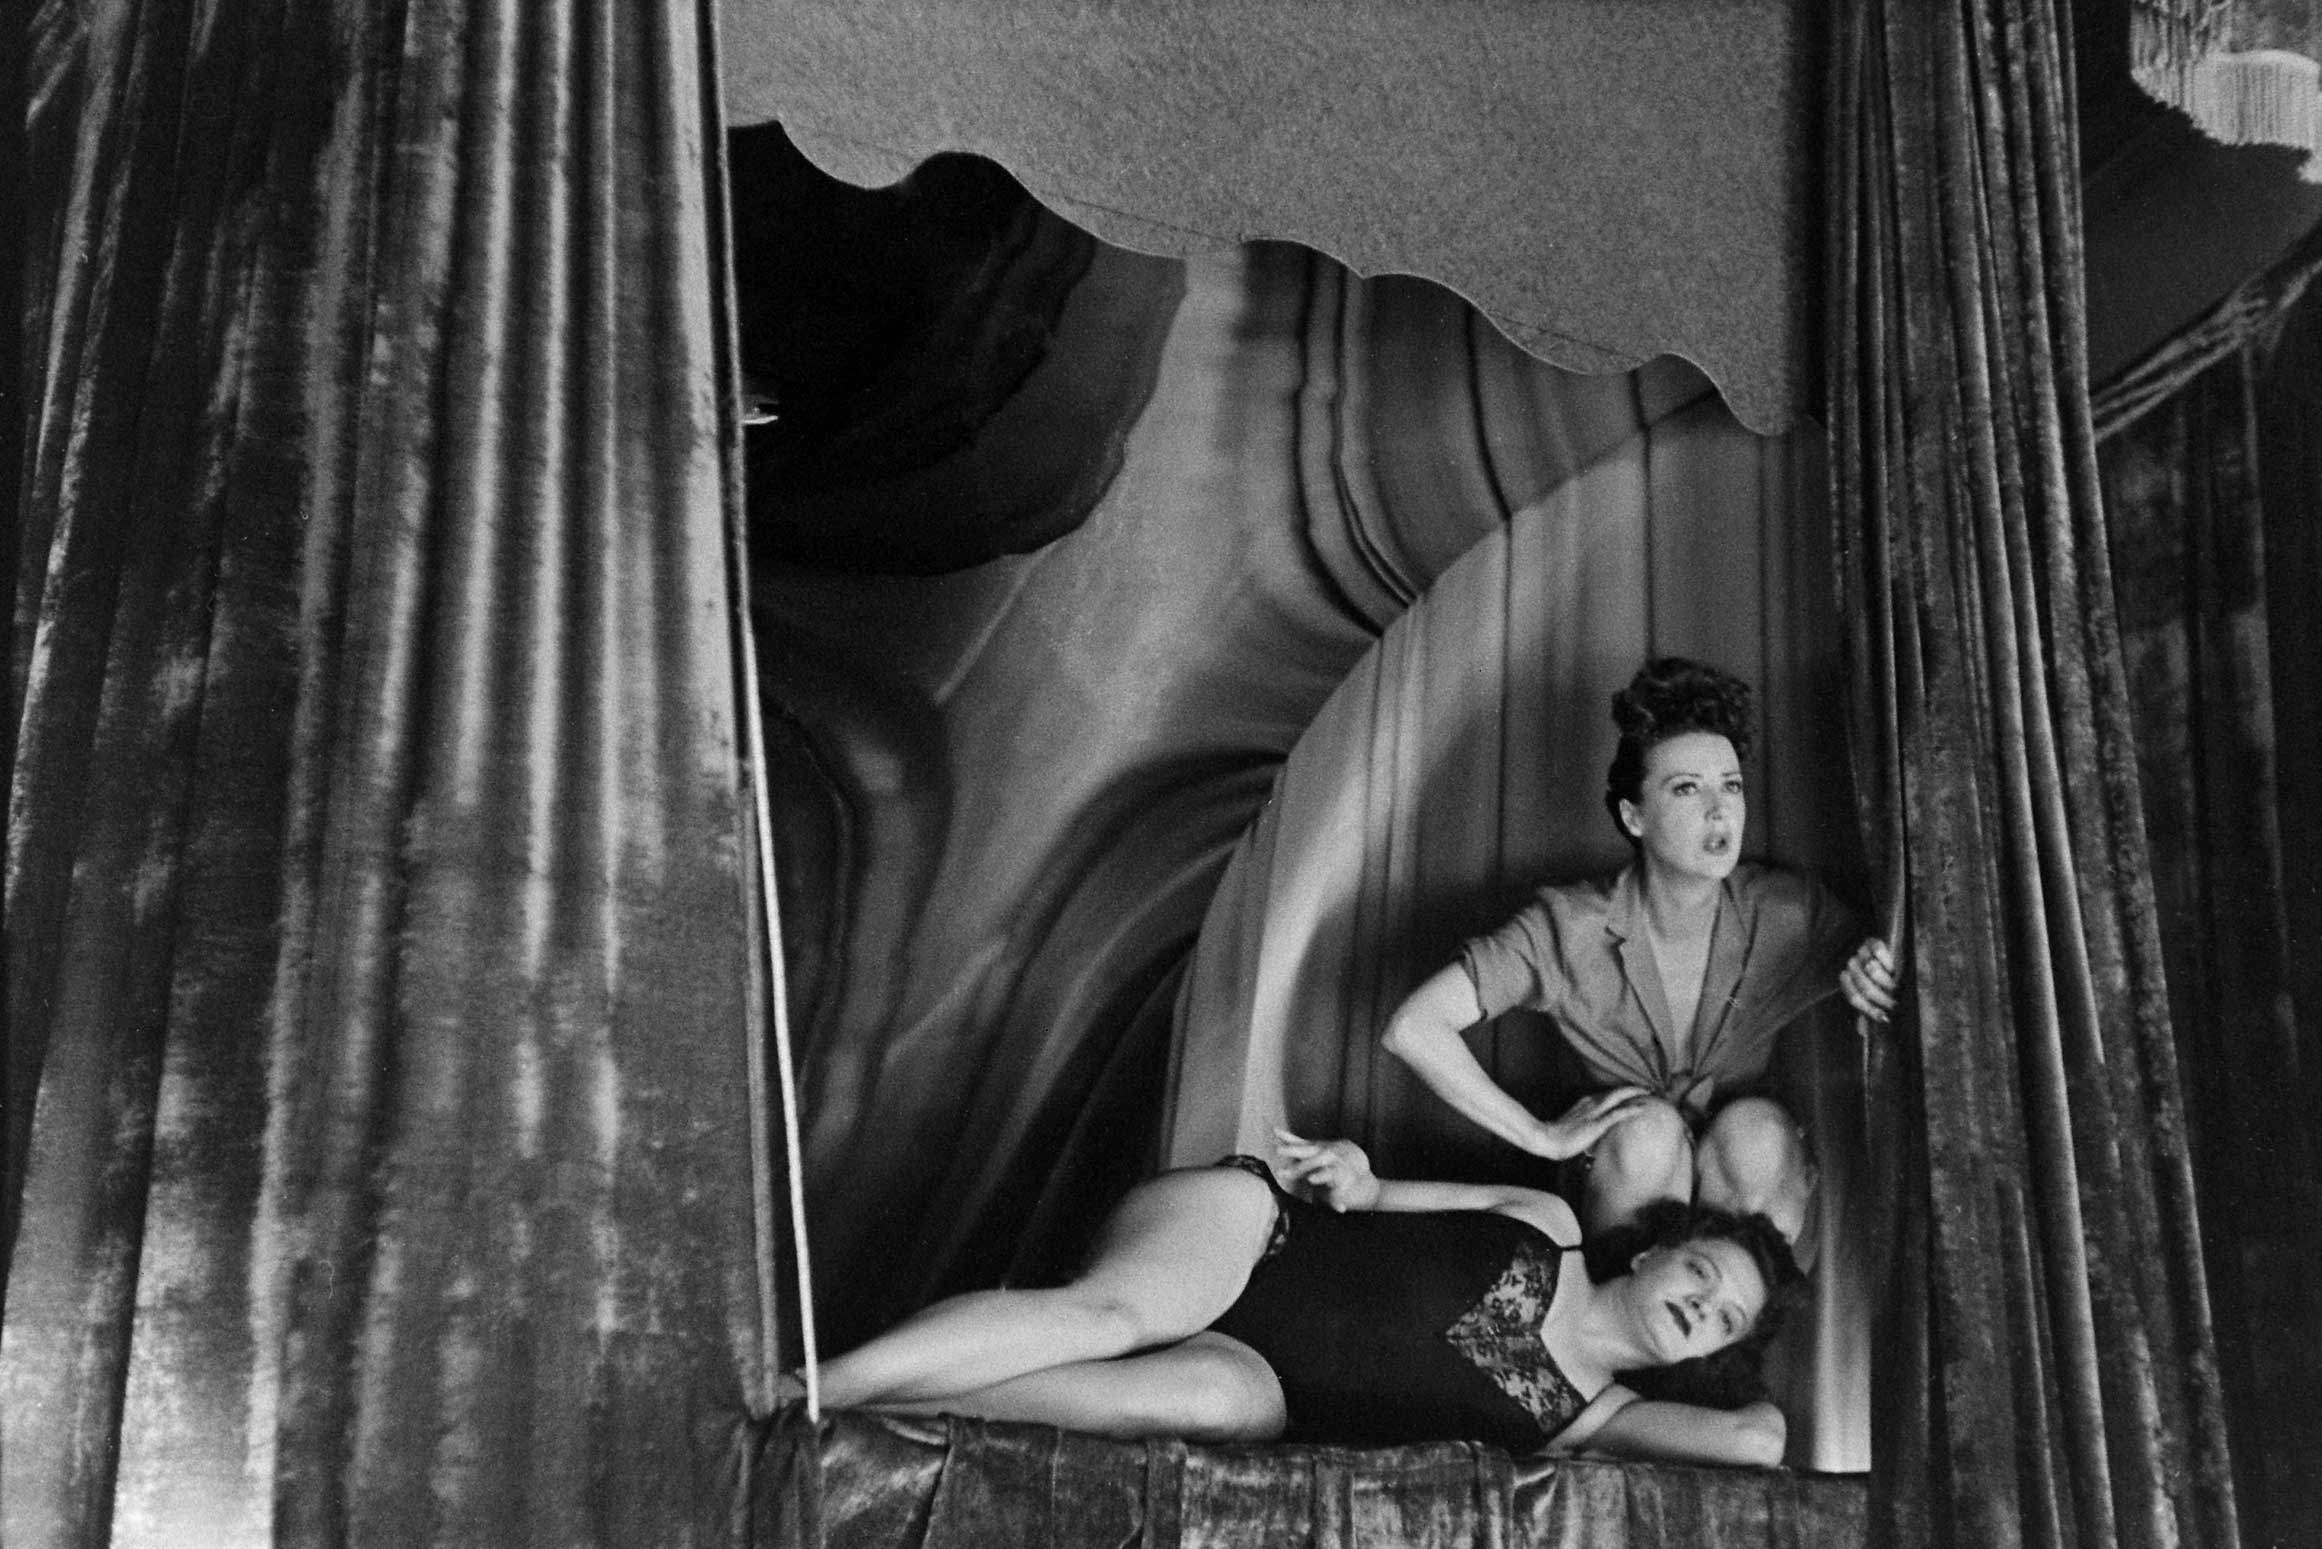 <b>Not published in LIFE.</b> Burlesque star Gypsy Rose Lee (top) with another performer in Memphis, Tenn., 1949.